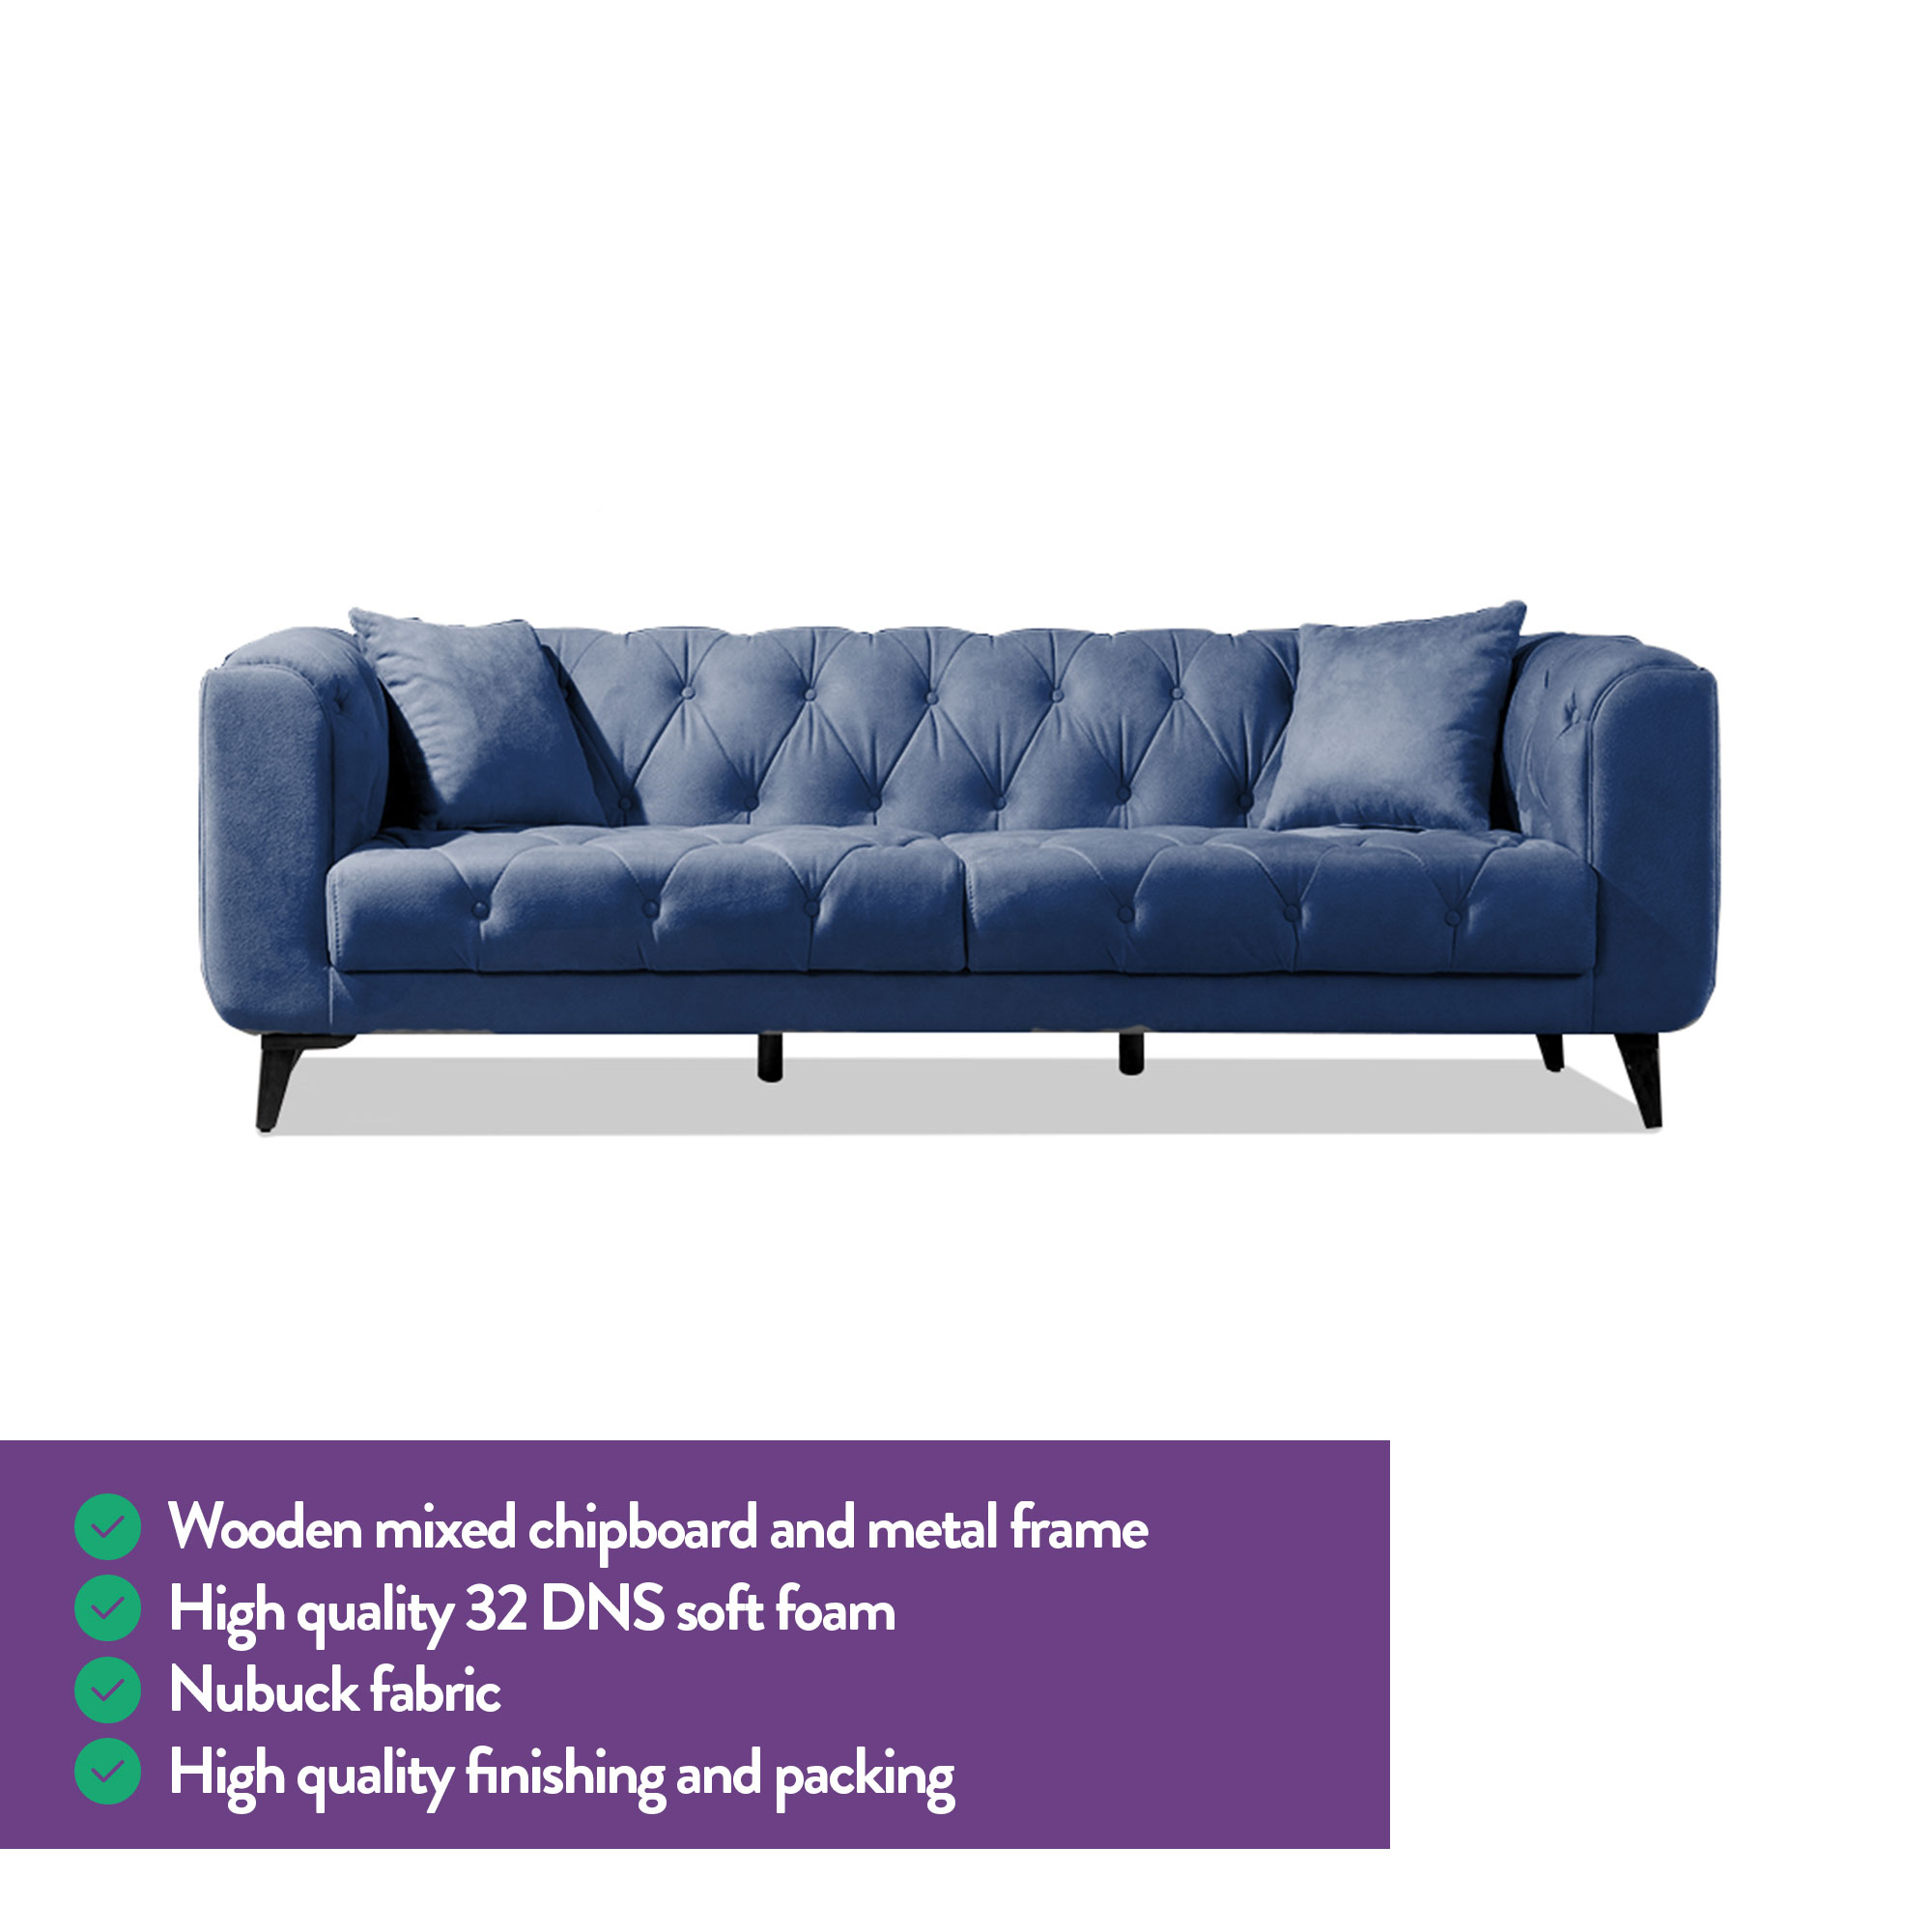 Pleasant Mare Collection Lyra Mid Century Modern Tufted Chesterfield 2 Seater Loveseat Sofa Starry Night Blue Home Designer Goods Squirreltailoven Fun Painted Chair Ideas Images Squirreltailovenorg